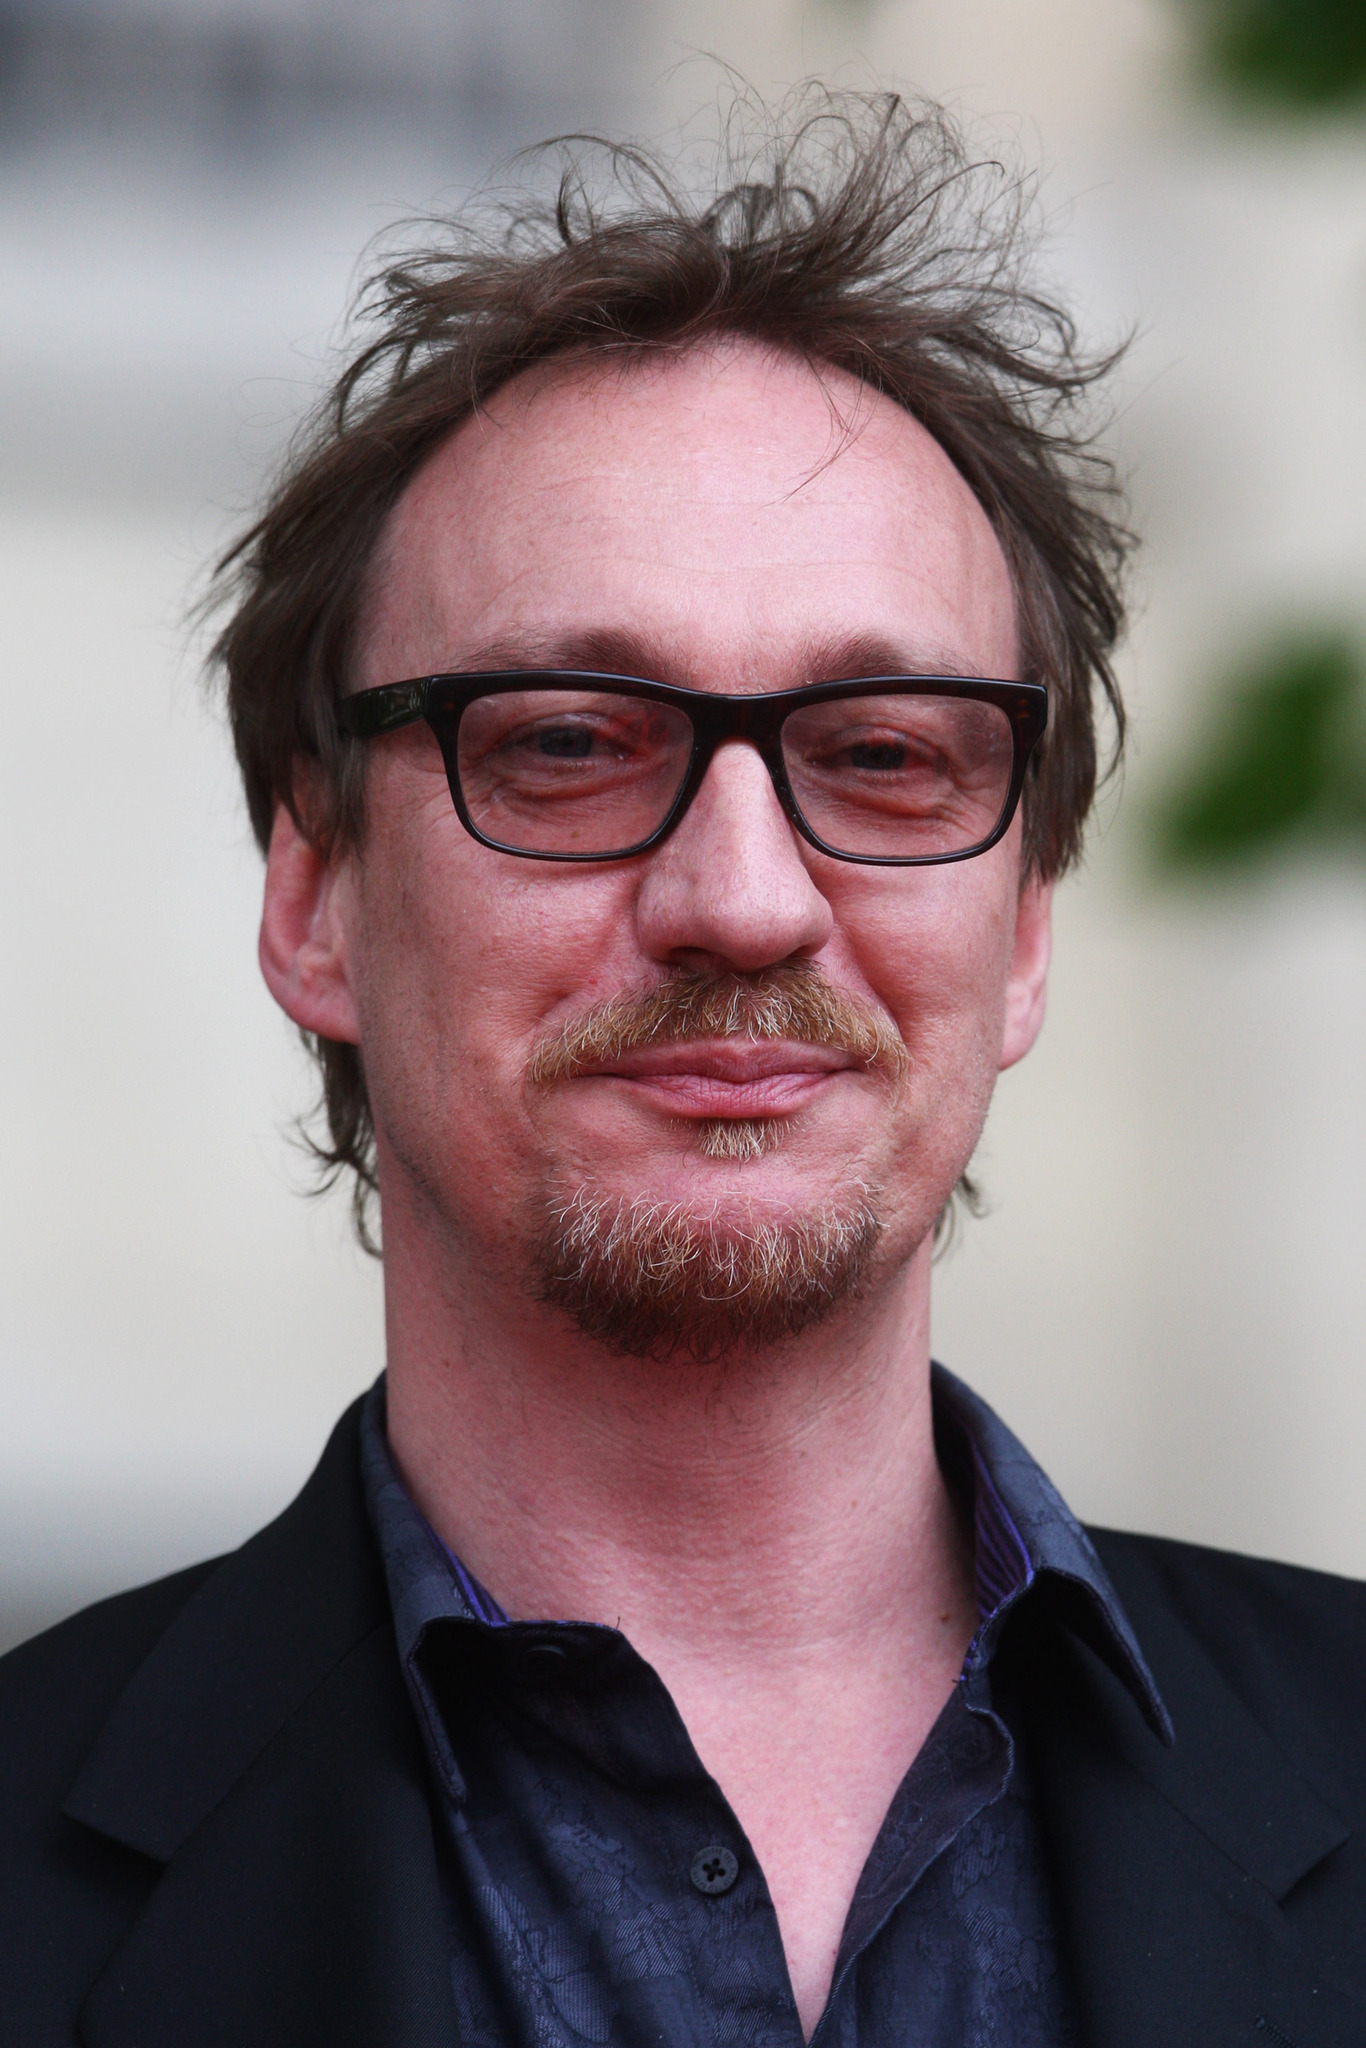 Discussion on this topic: Sunrise Coigney, david-thewlis-born-1963/